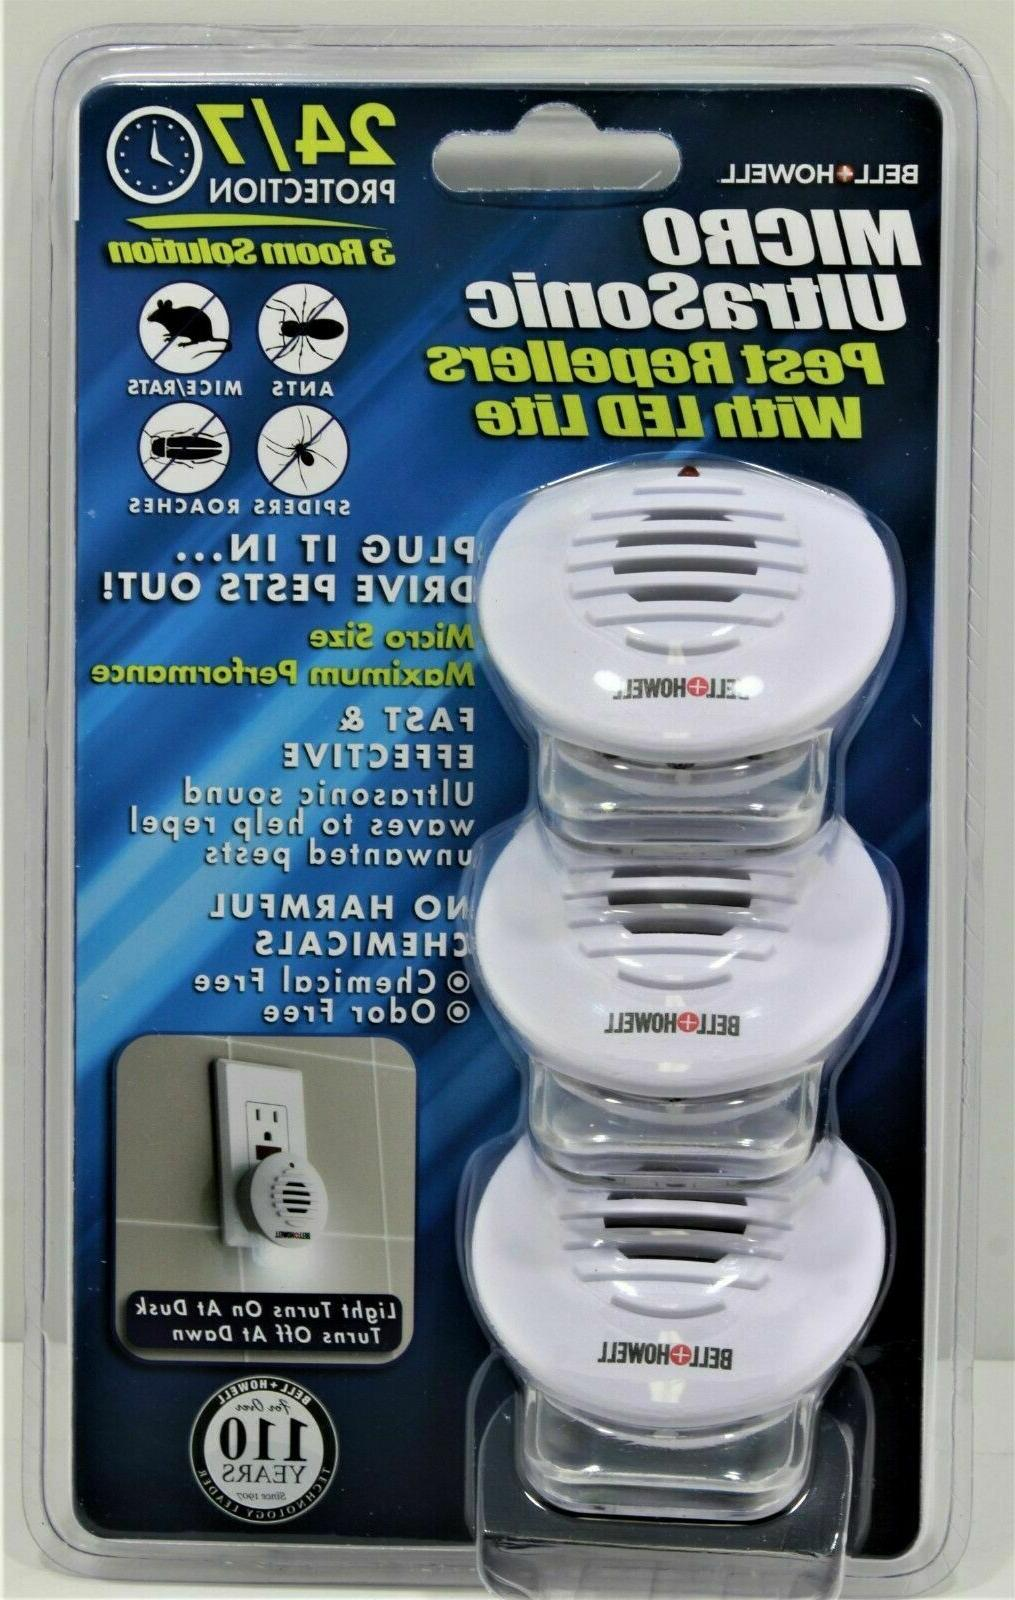 bell howell micro ultrasonic pest repellers w